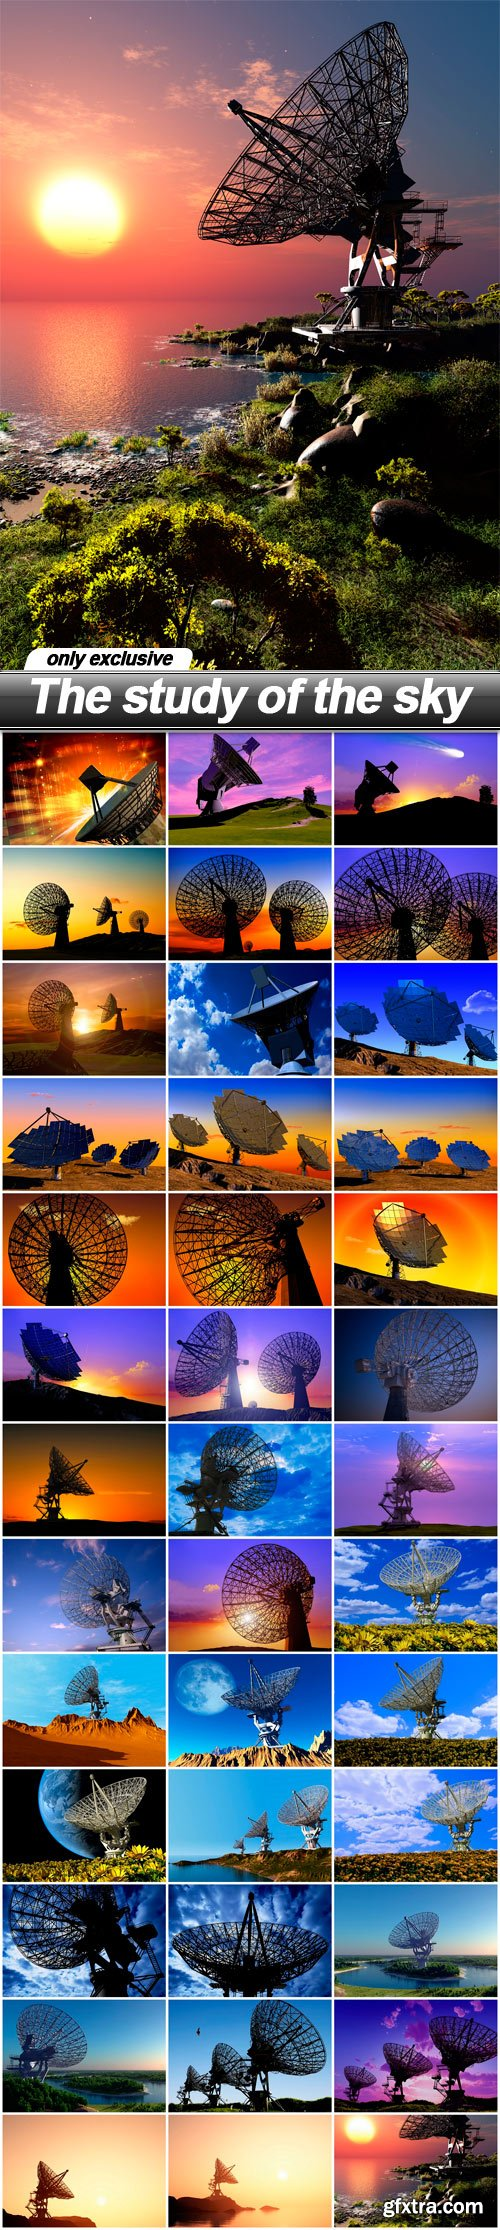 The study of the sky - 39 UHQ JPEG